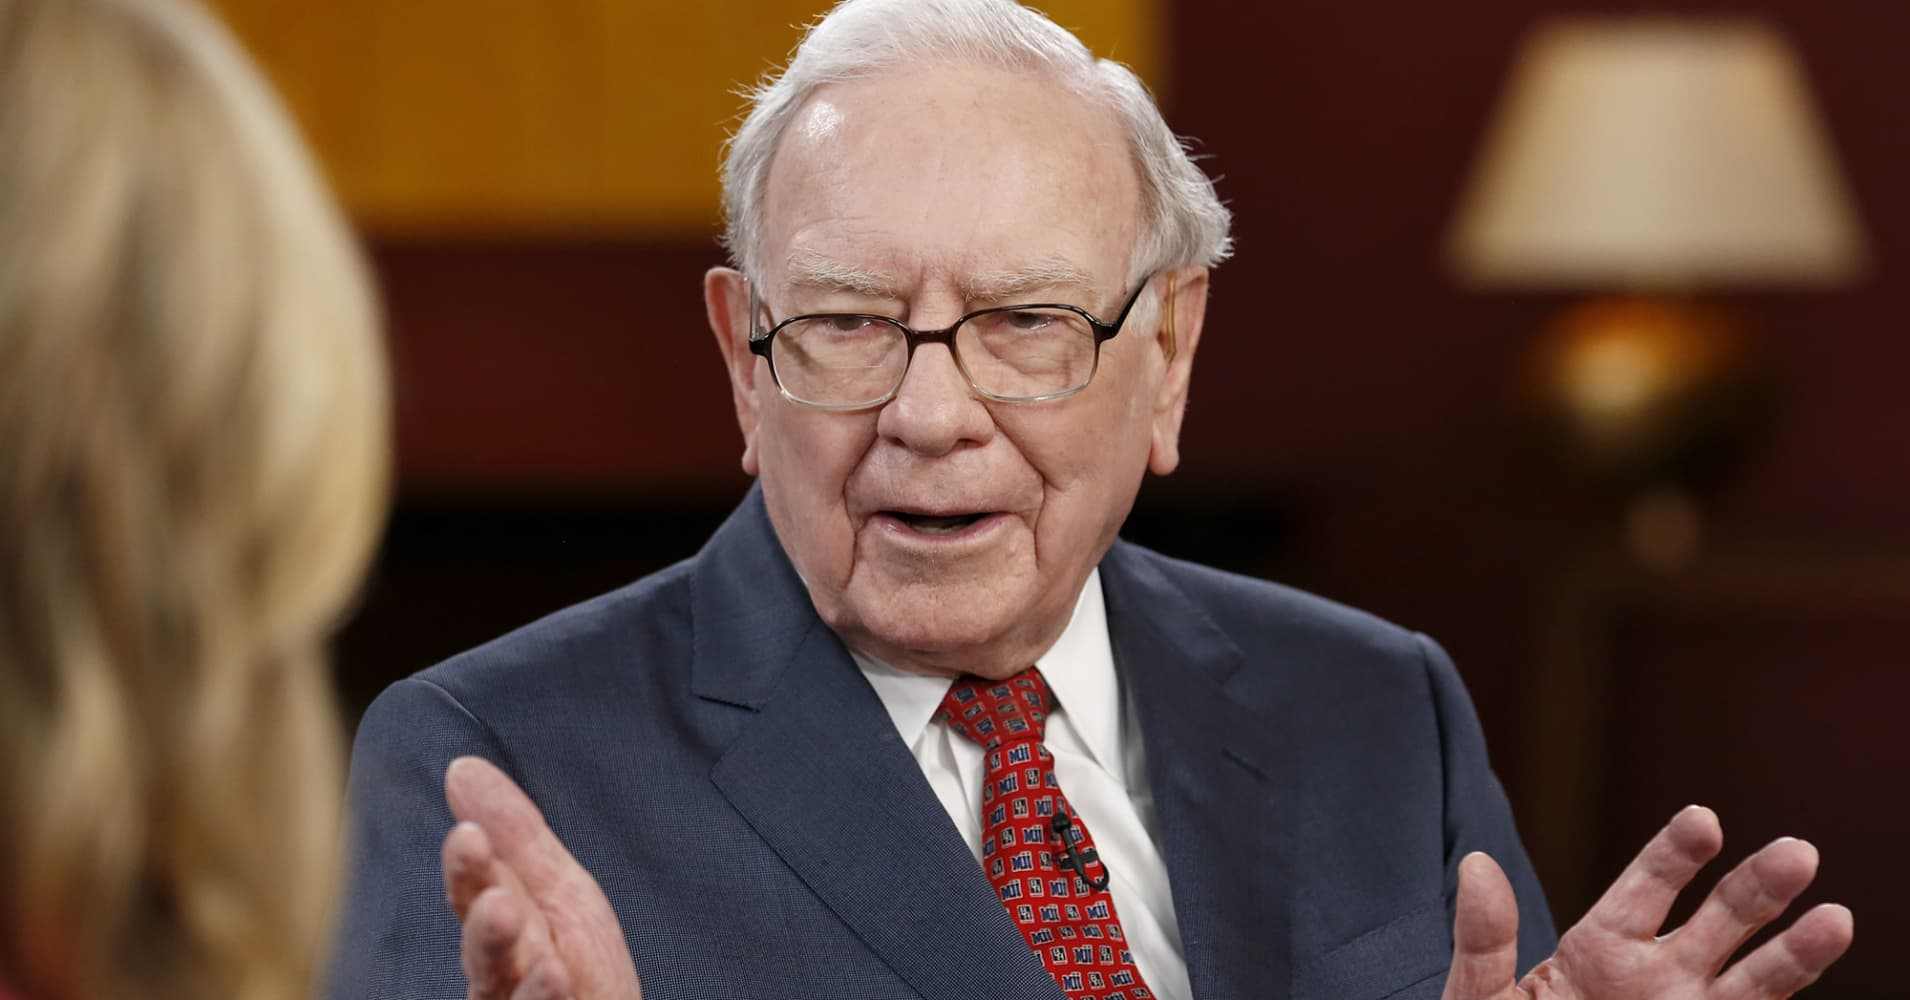 News post image: Warren Buffett describes a great 'American Tailwind' in annual letter - here are the highlights